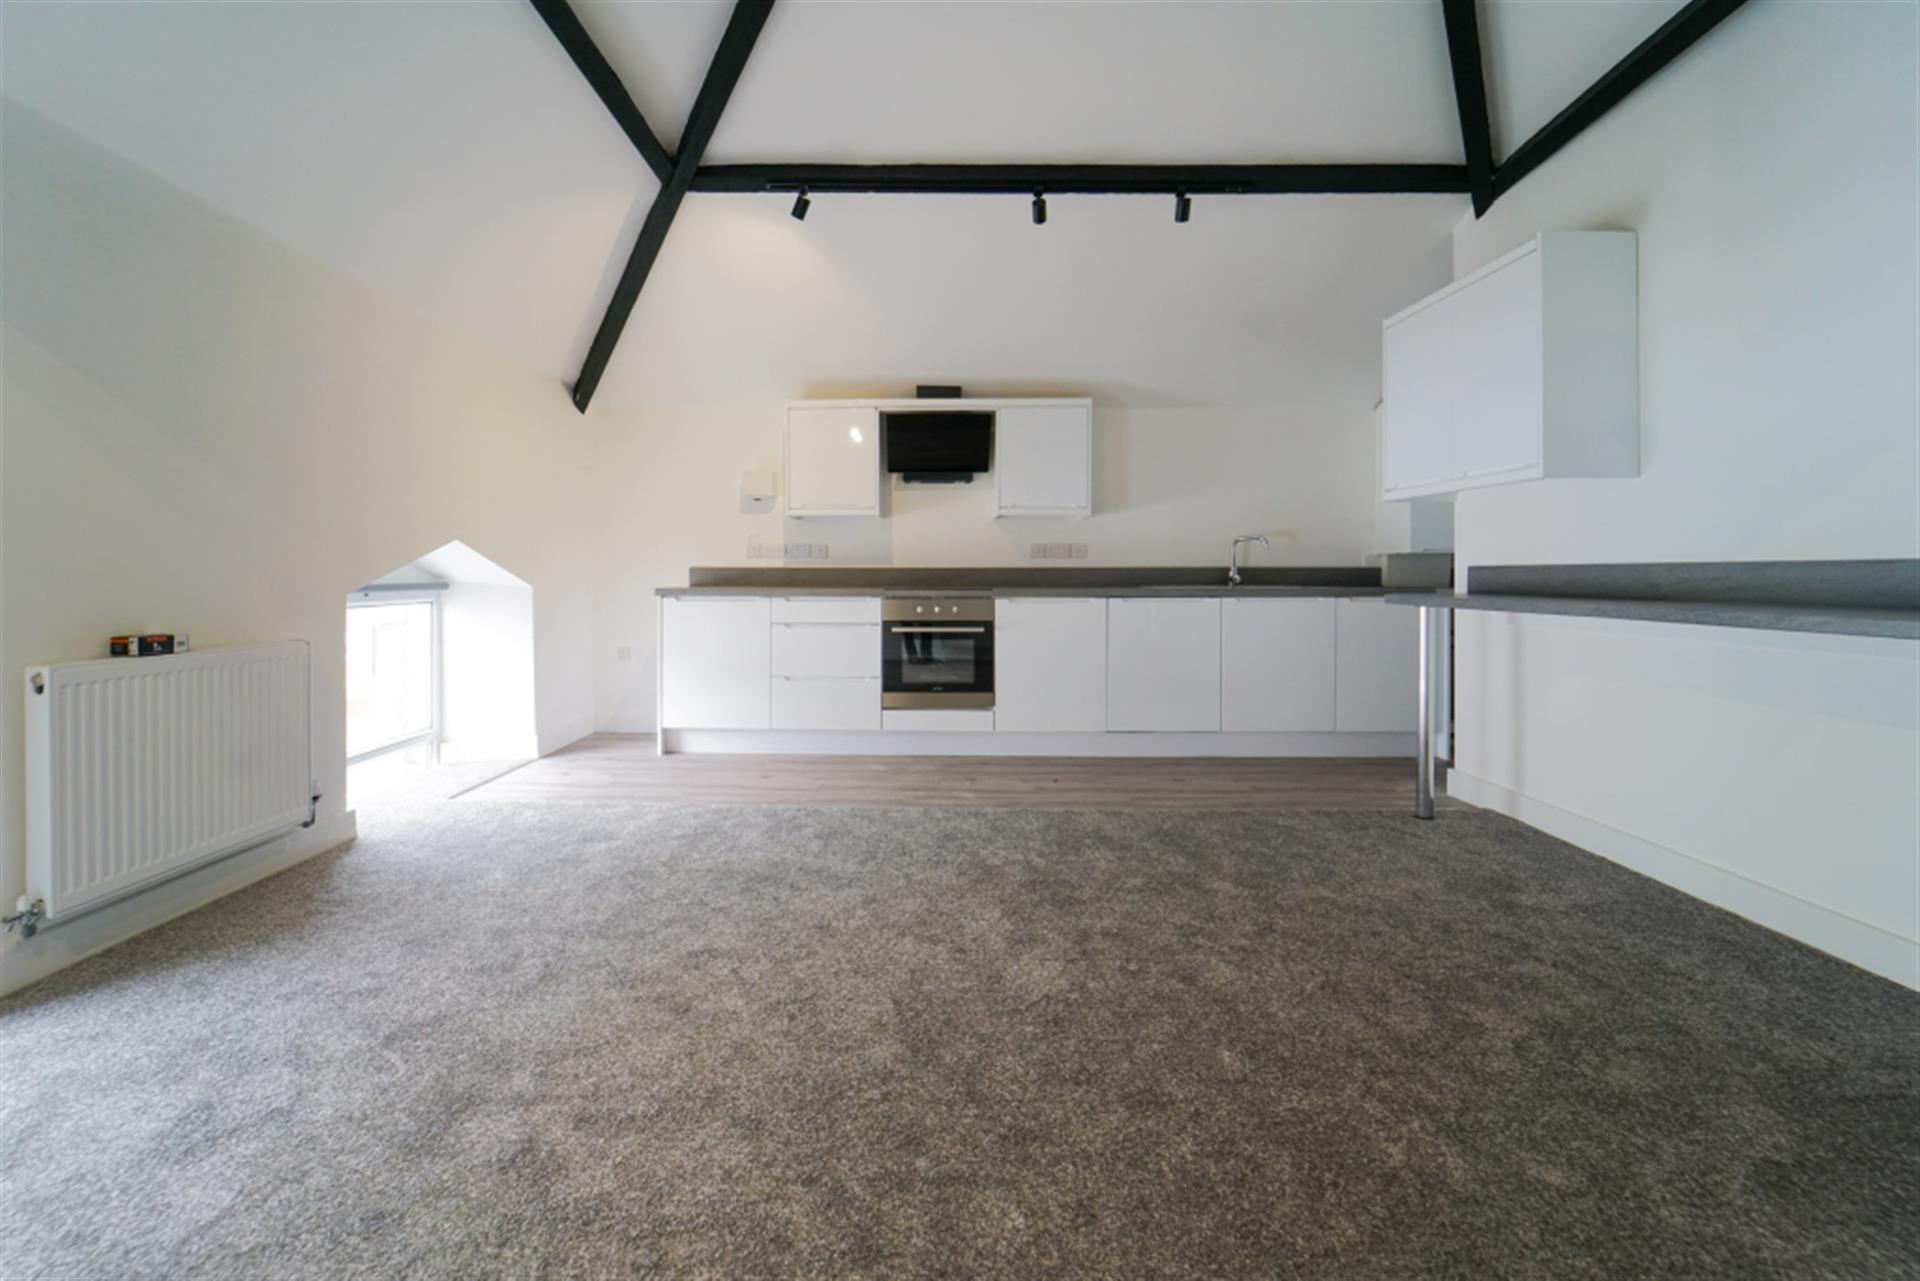 3 bedroom apartment flat / apartment To Let in 96 Watery Lane, Whitehall, Darwen, Lancs - Photo